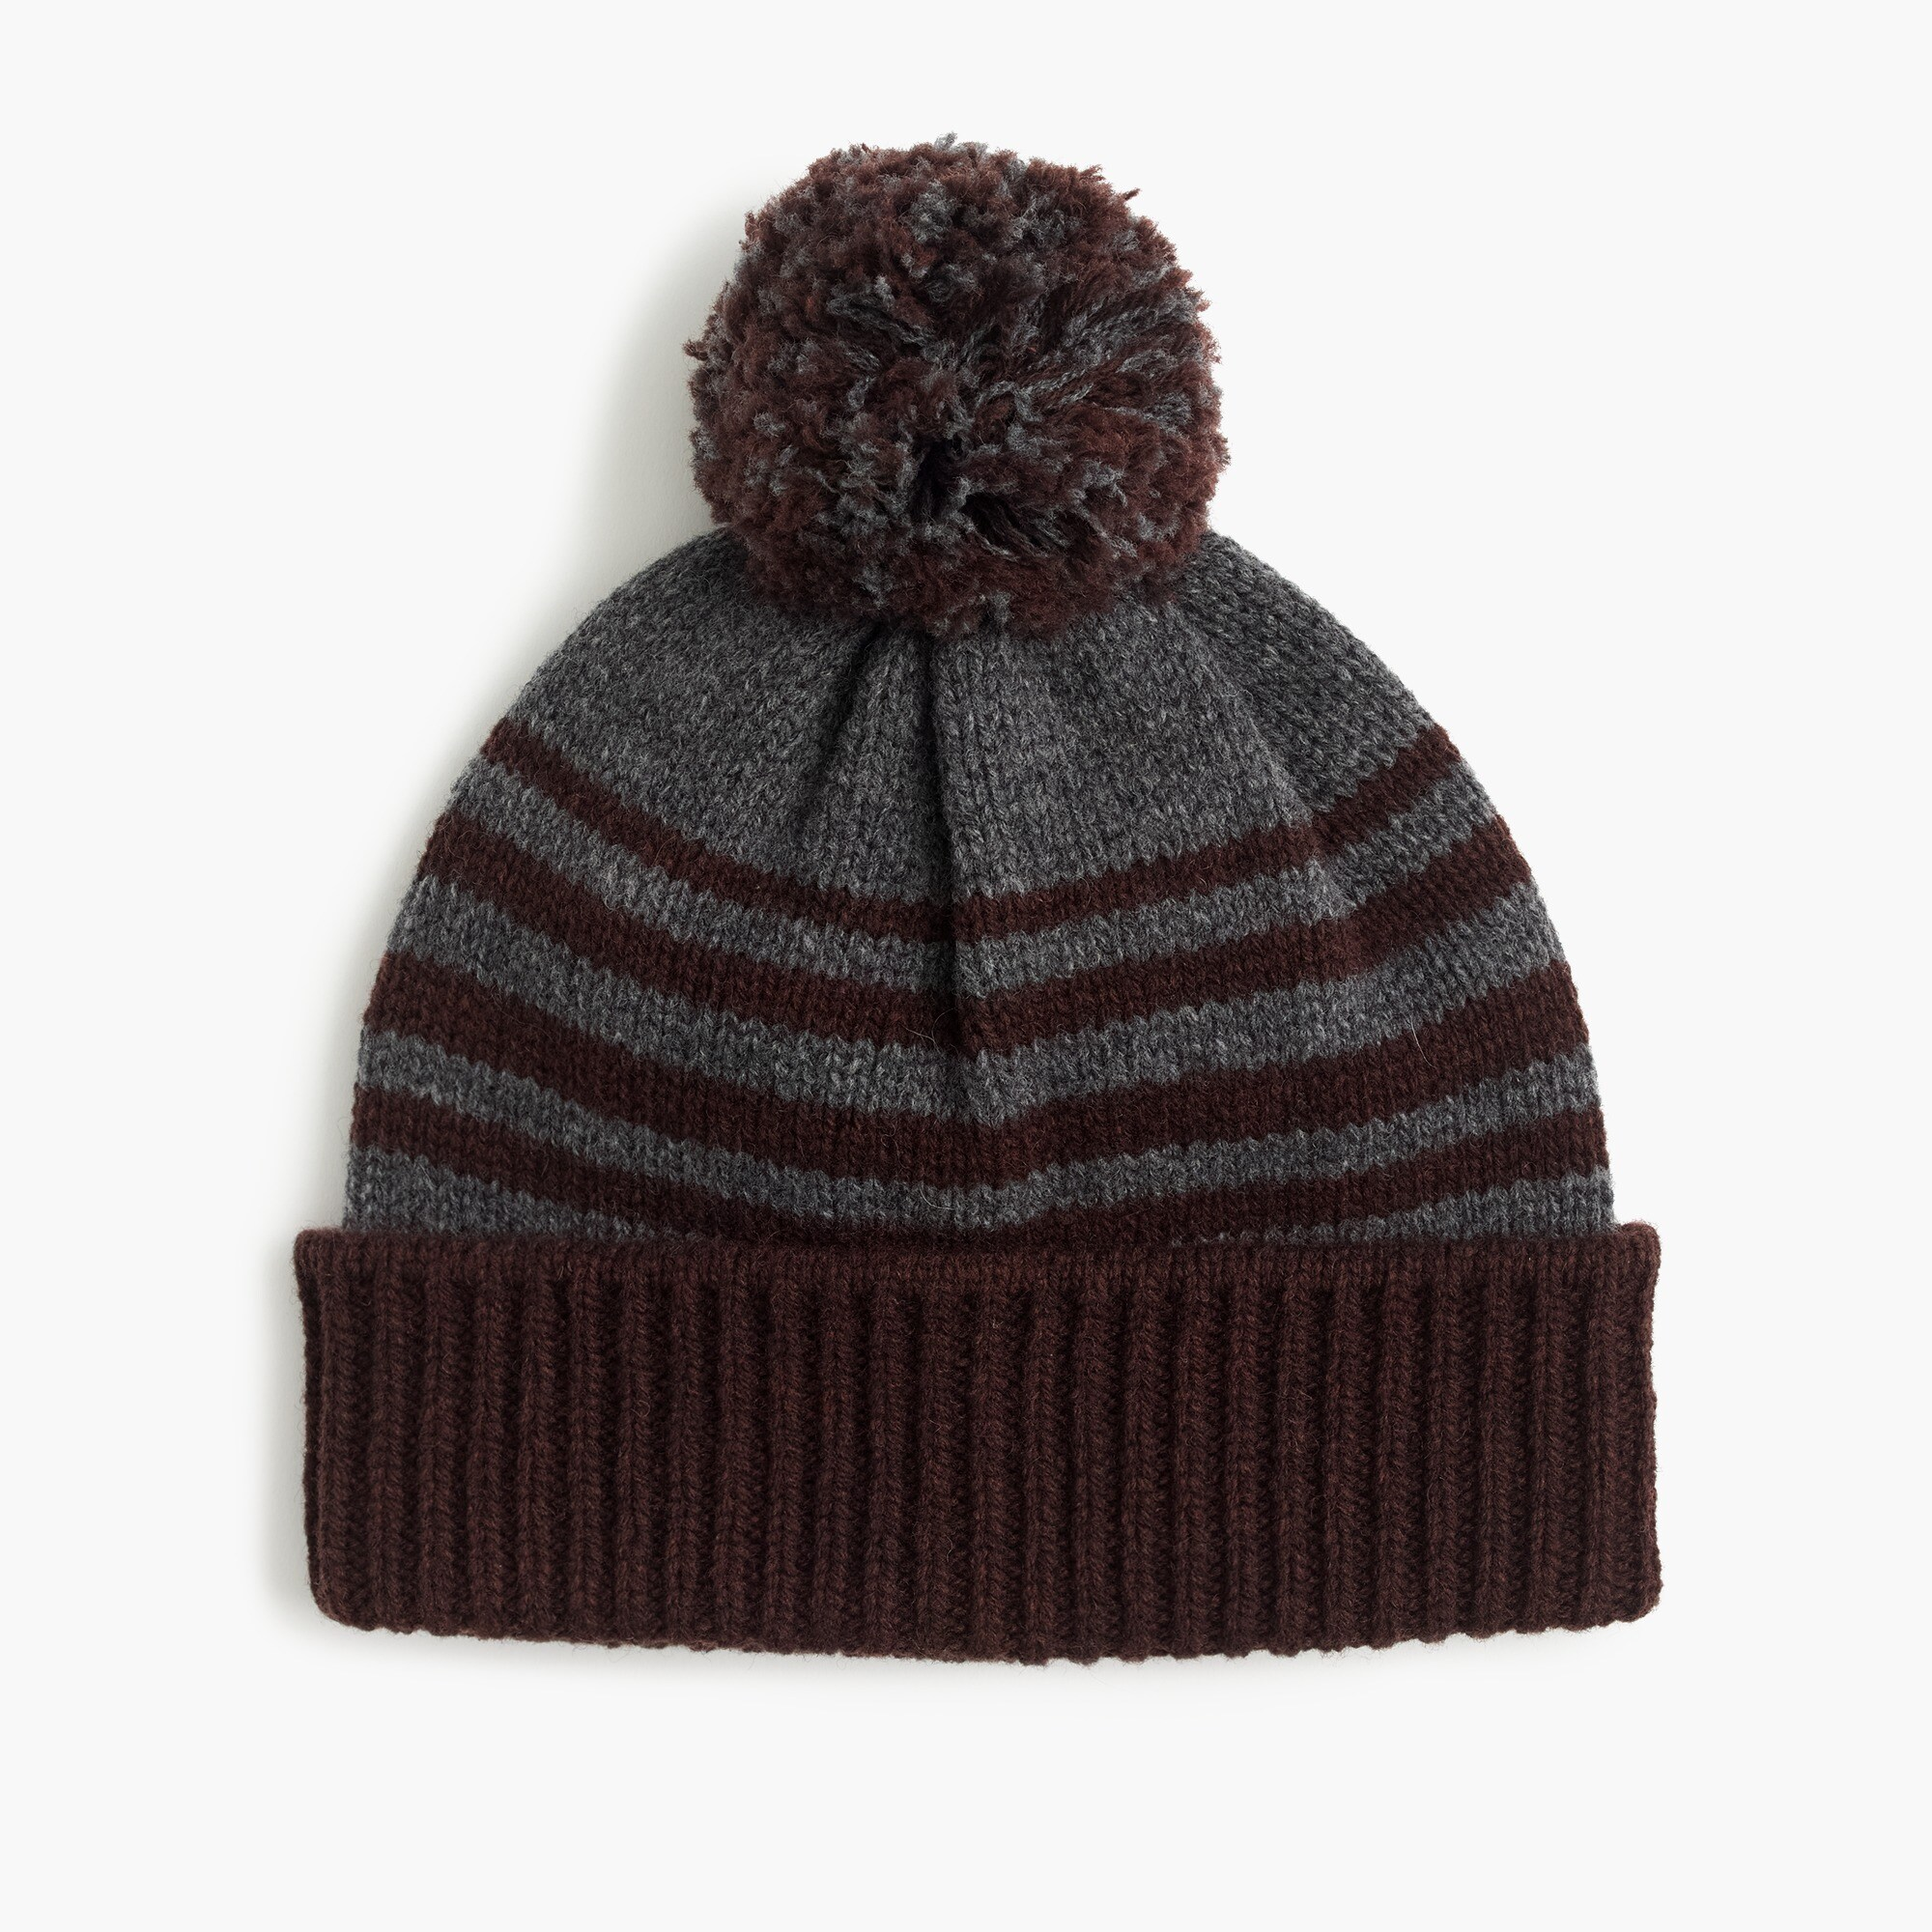 Lambswool beanie hat in brown stripe